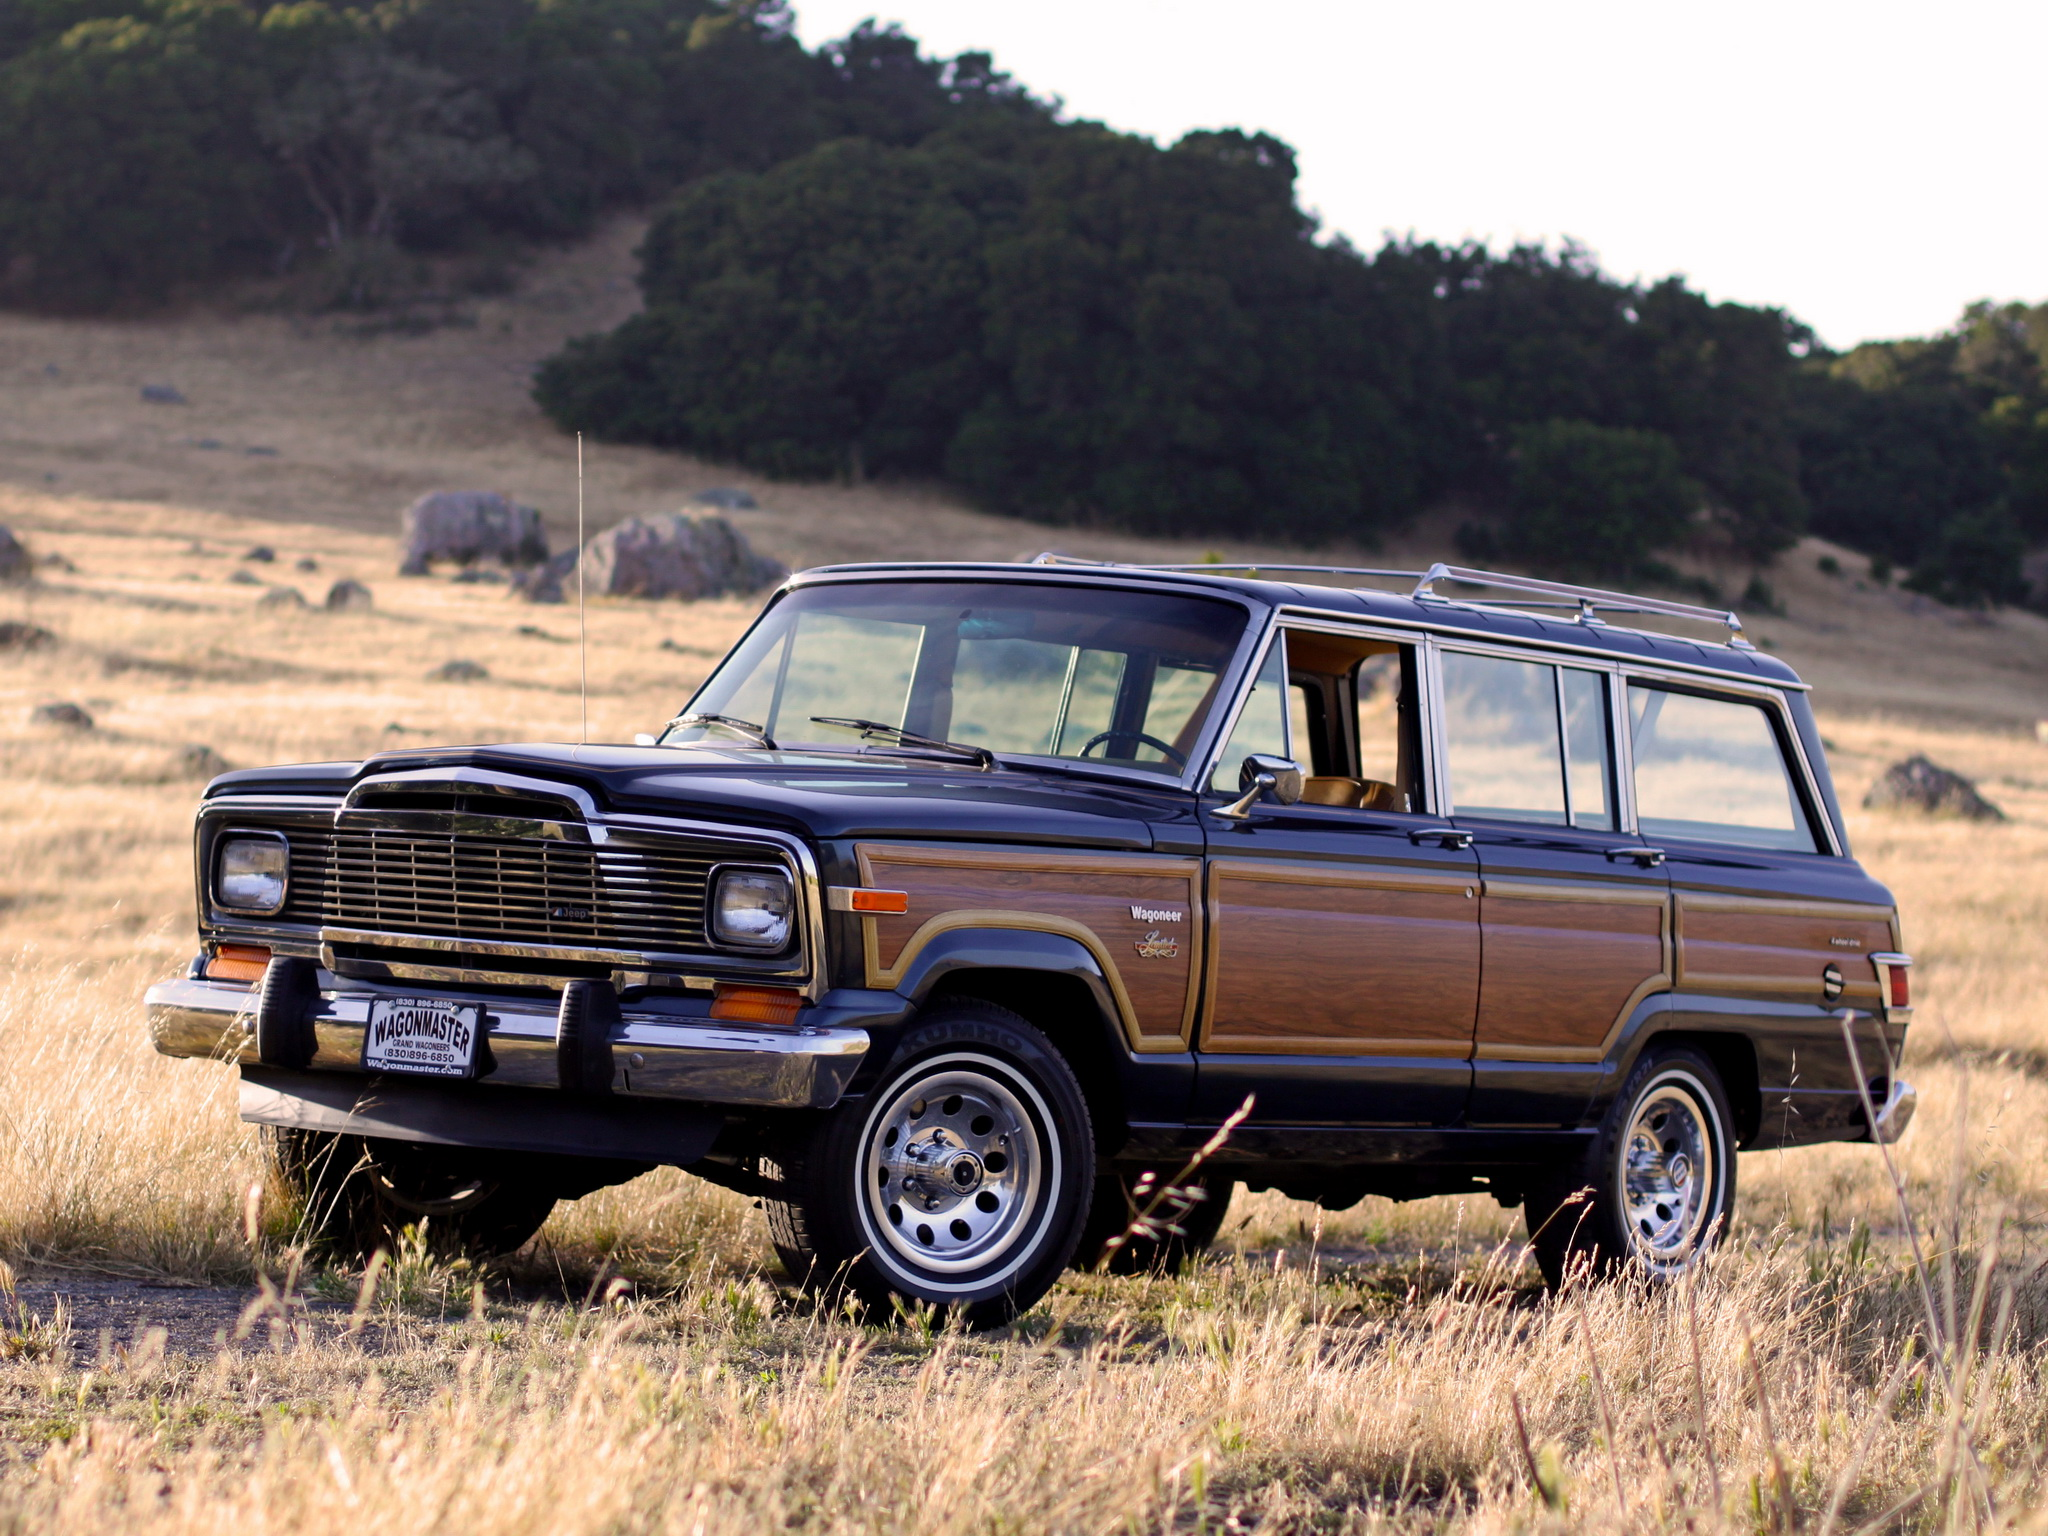 Grand Wagoneer 2017 >> 1979 Jeep Wagoneer Limited 4x4 suv stationwagon g wallpaper | 2048x1536 | 167208 | WallpaperUP